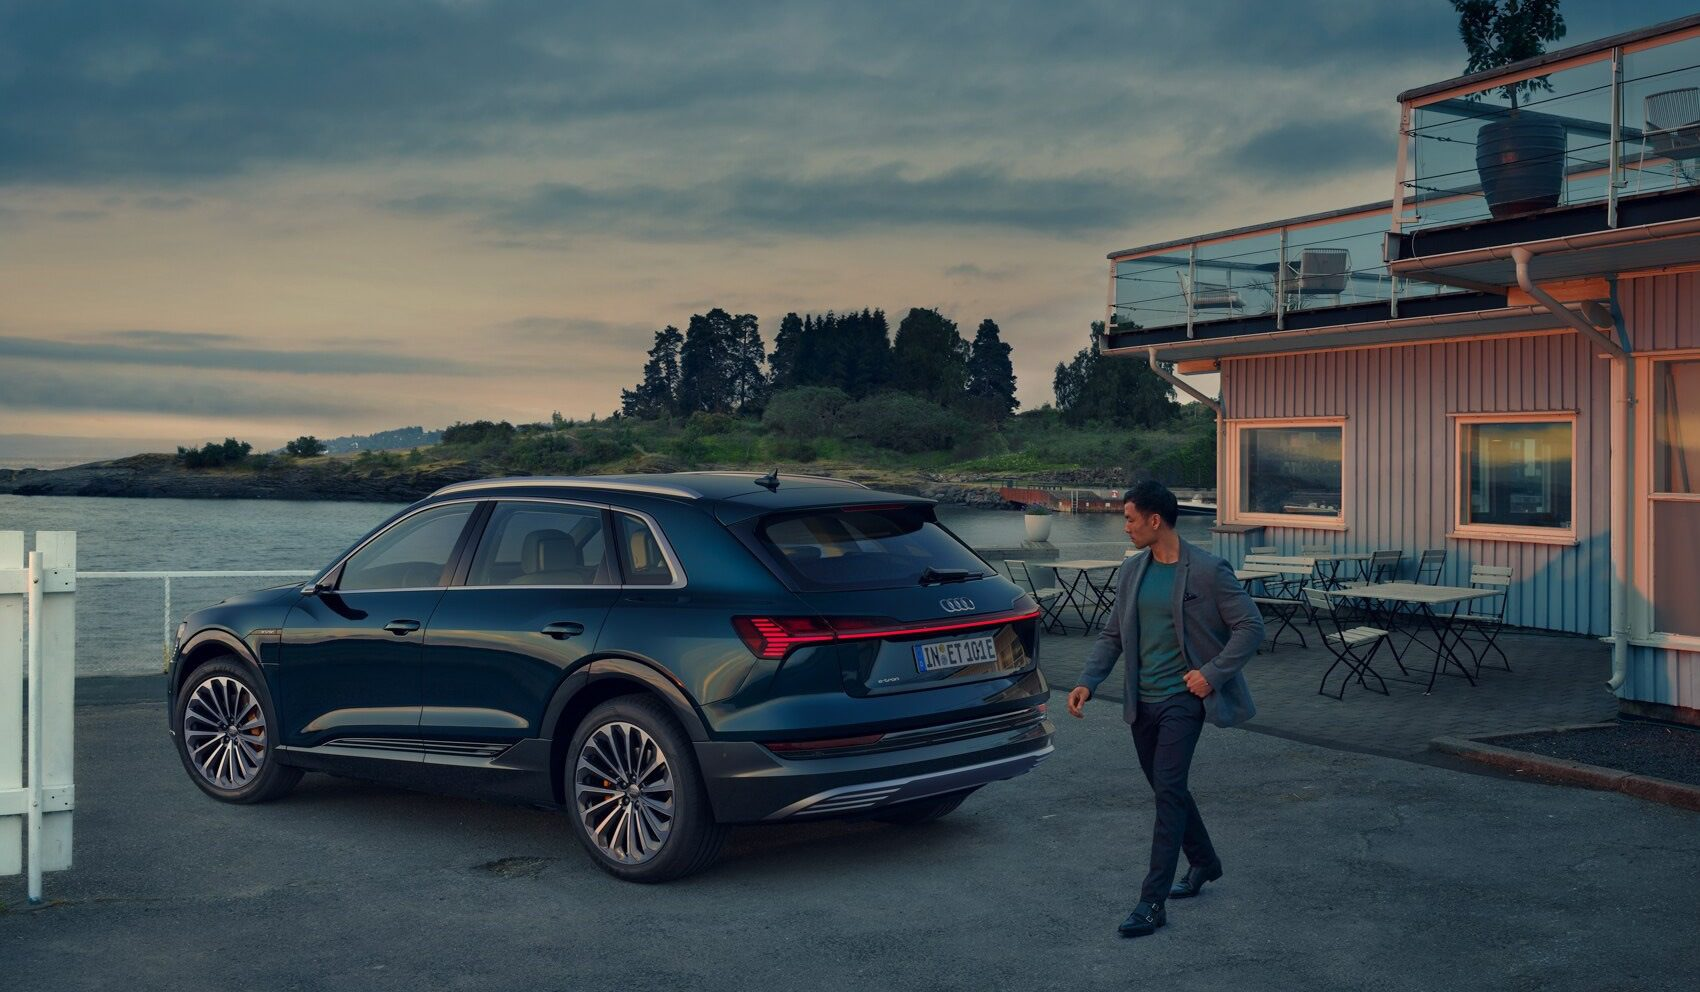 Audi e-tron (2019) Review: The Electric Car That Doesn't Feel Like One